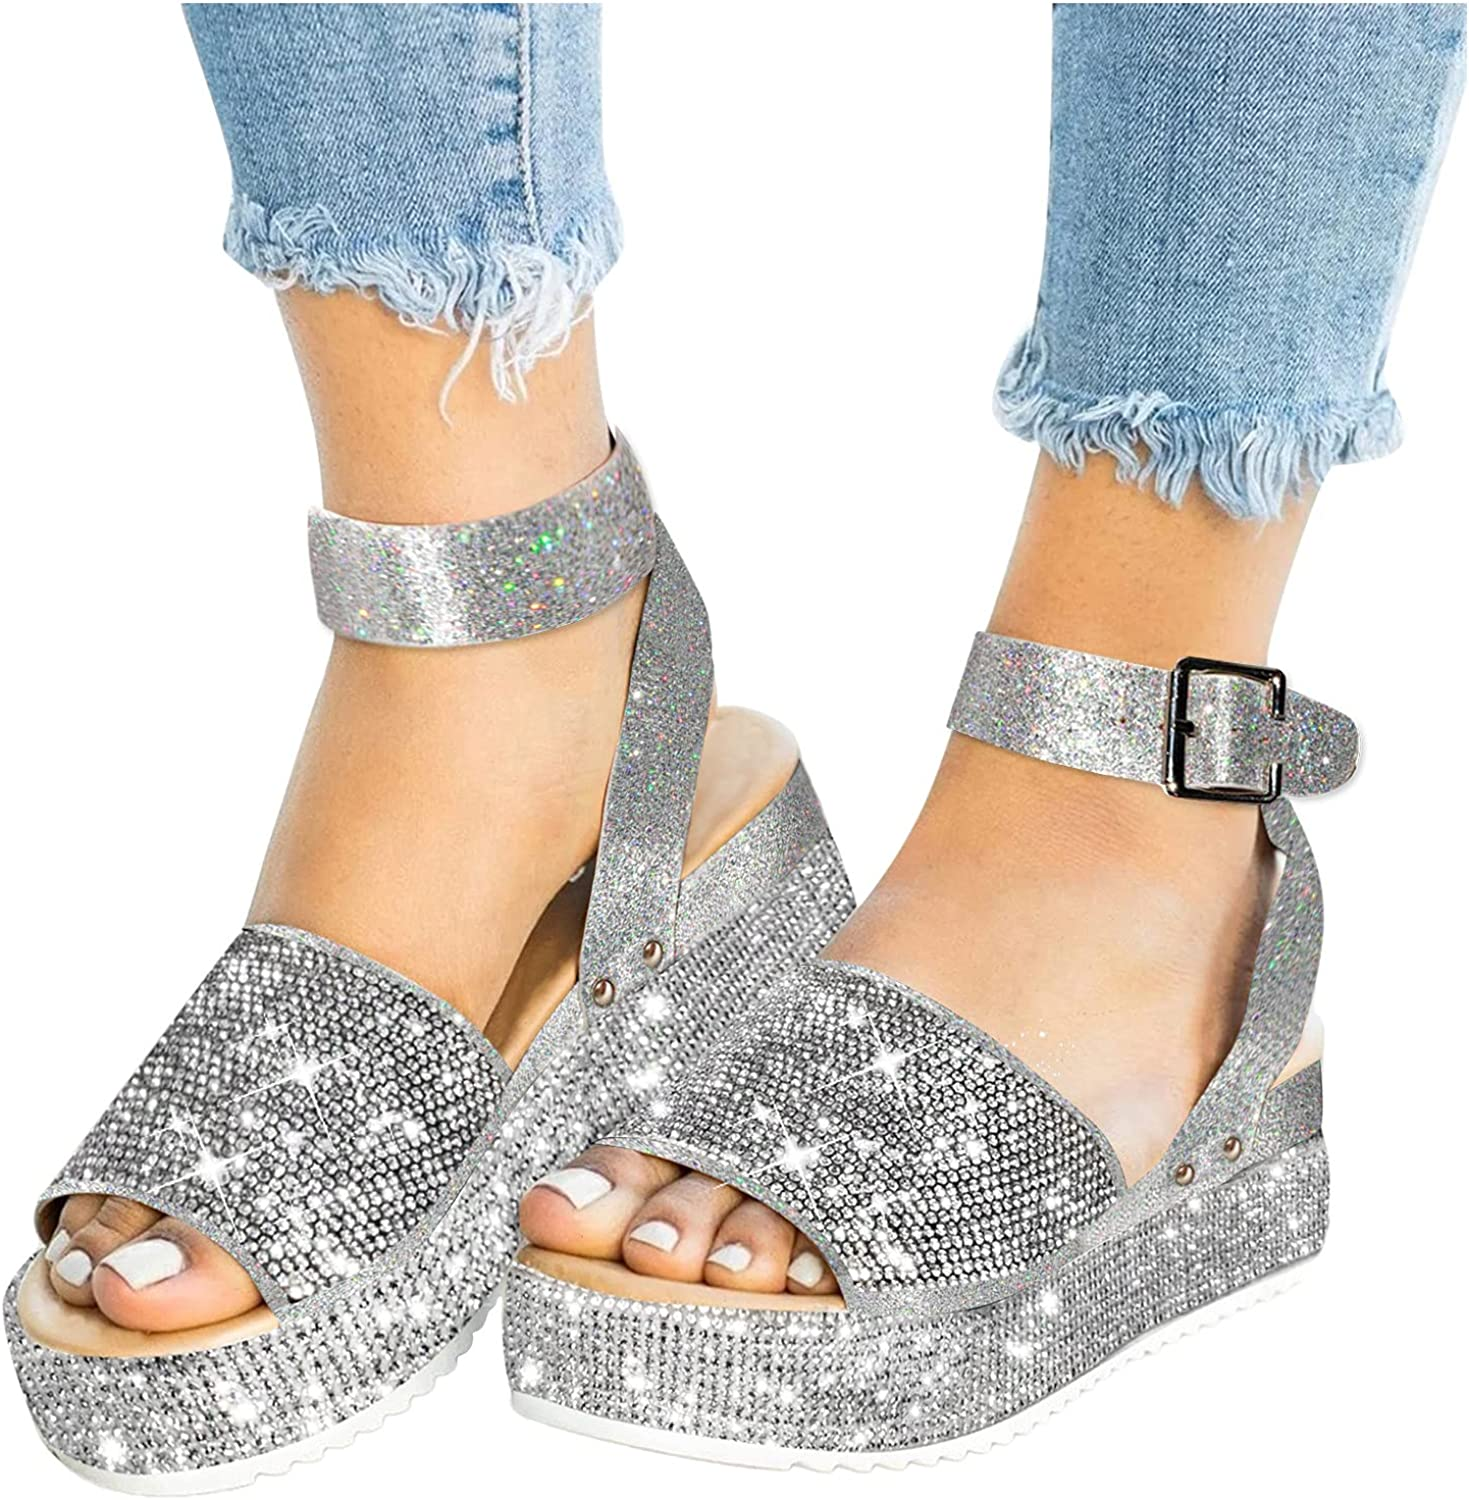 Xudanell Mail order Sandalias Mujer Cork Sole Rh Studded Regular discount Low Sparkle Wedges